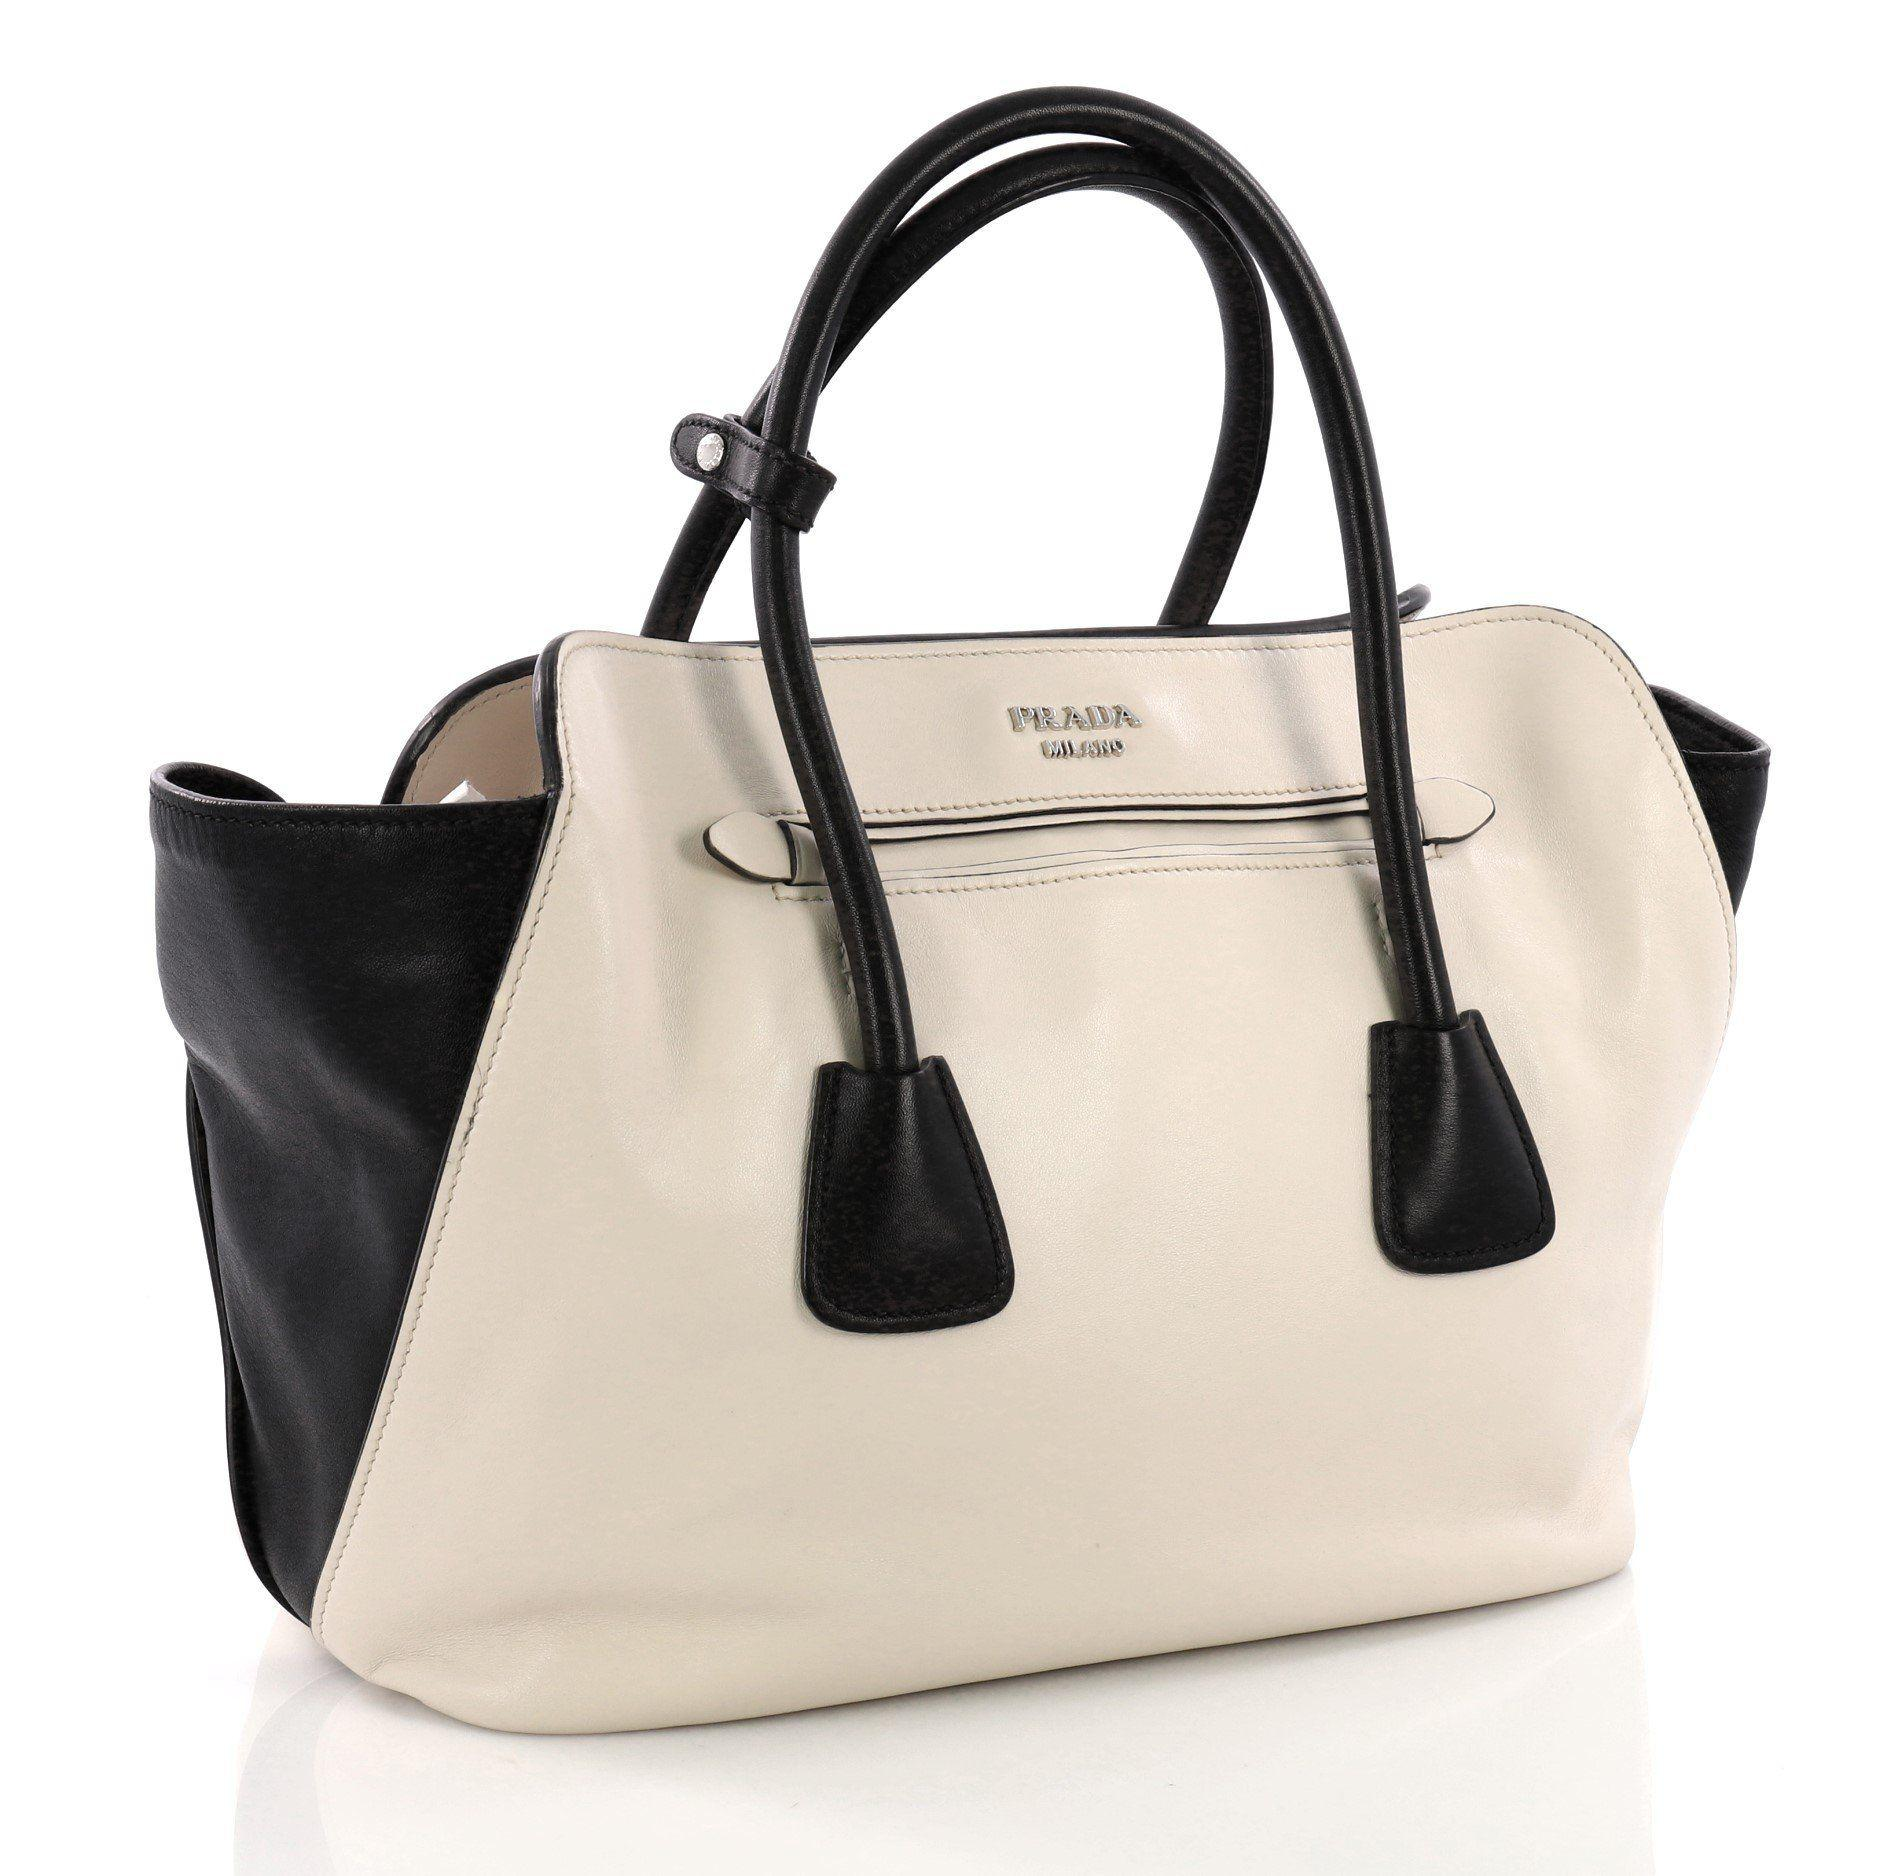 45c811bbb1d3 Prada - Multicolor Pre Owned Cuir Convertible Shopping Tote Soft Calfskin  Large - Lyst. View fullscreen